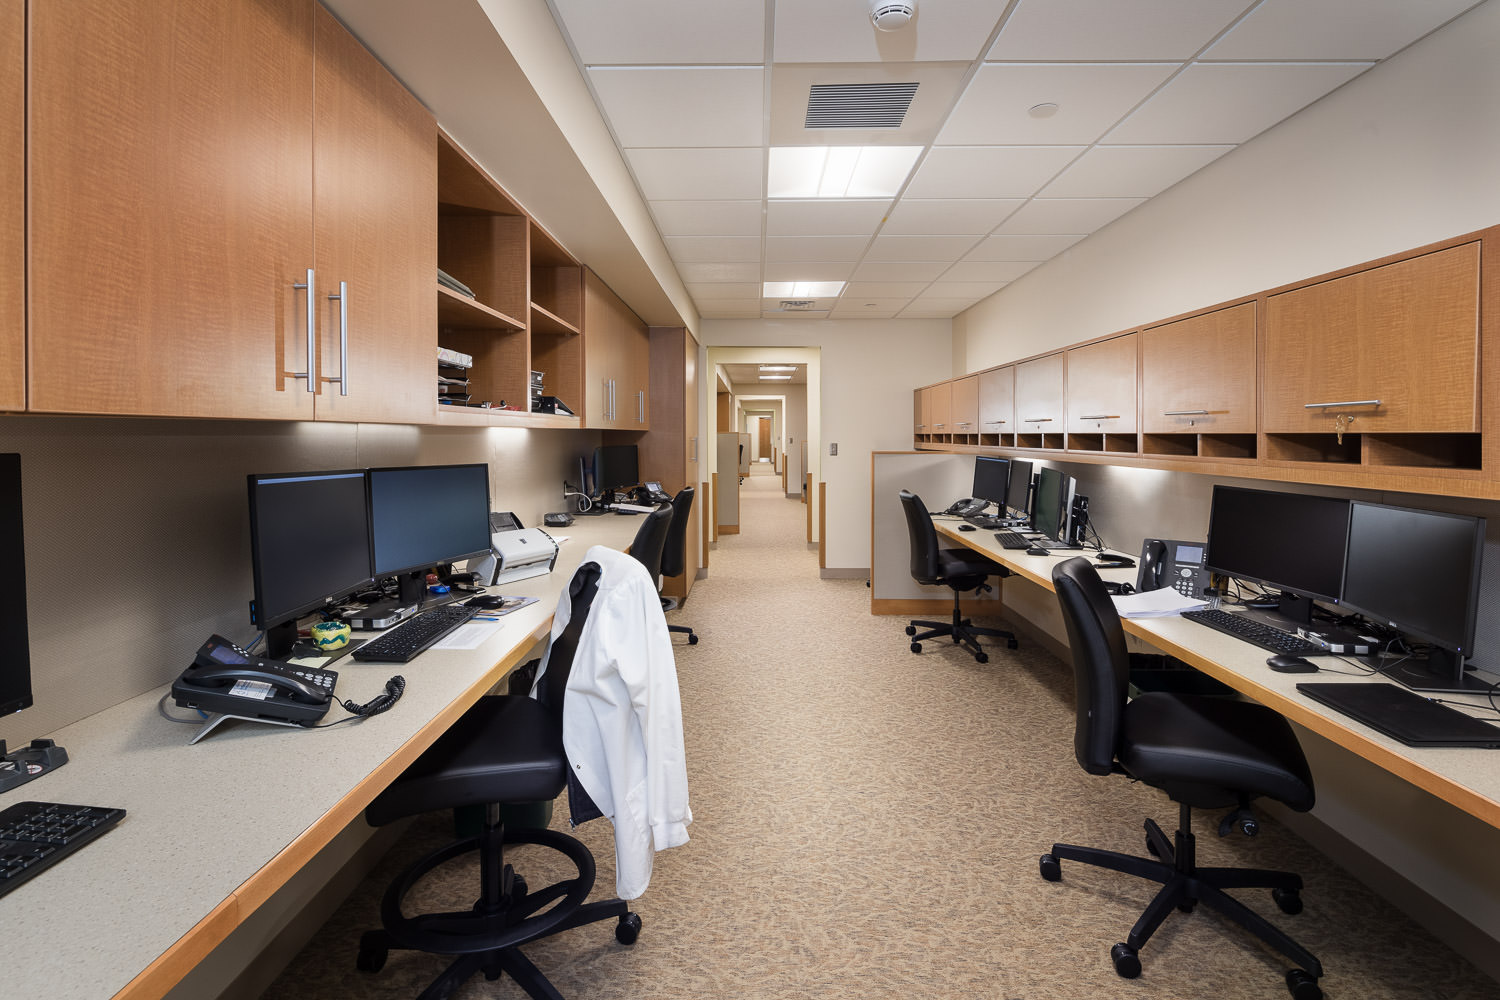 A photo of a staff work area in the new Northwestern Medical Center Clinics building in St. Albans Vermont by Studio SB